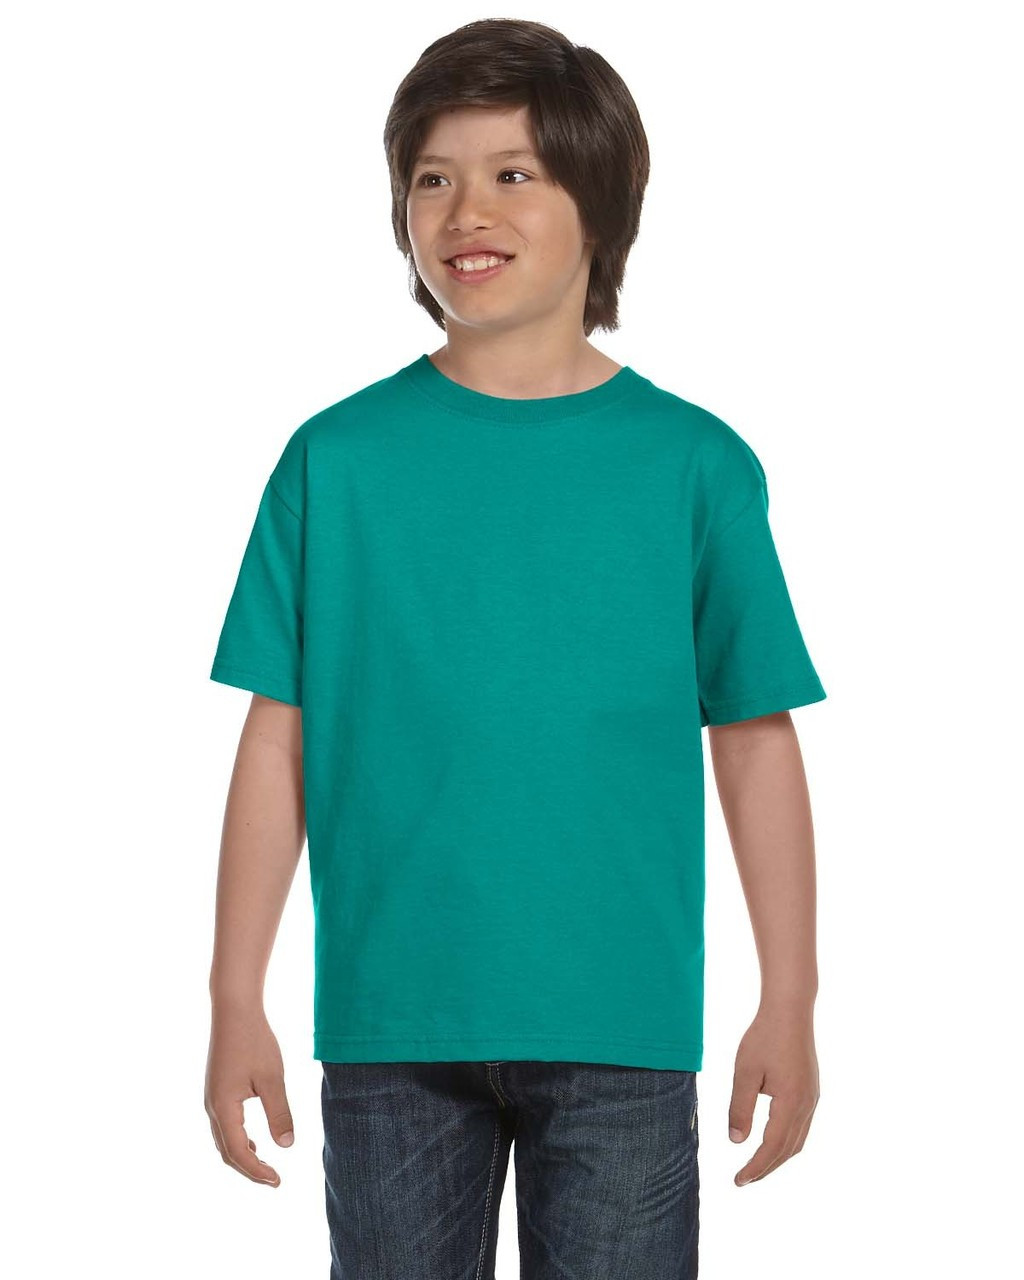 Jade Dome - G800B Gildan DryBlend 50/50 Youth T-Shirt | Blankclothing.ca